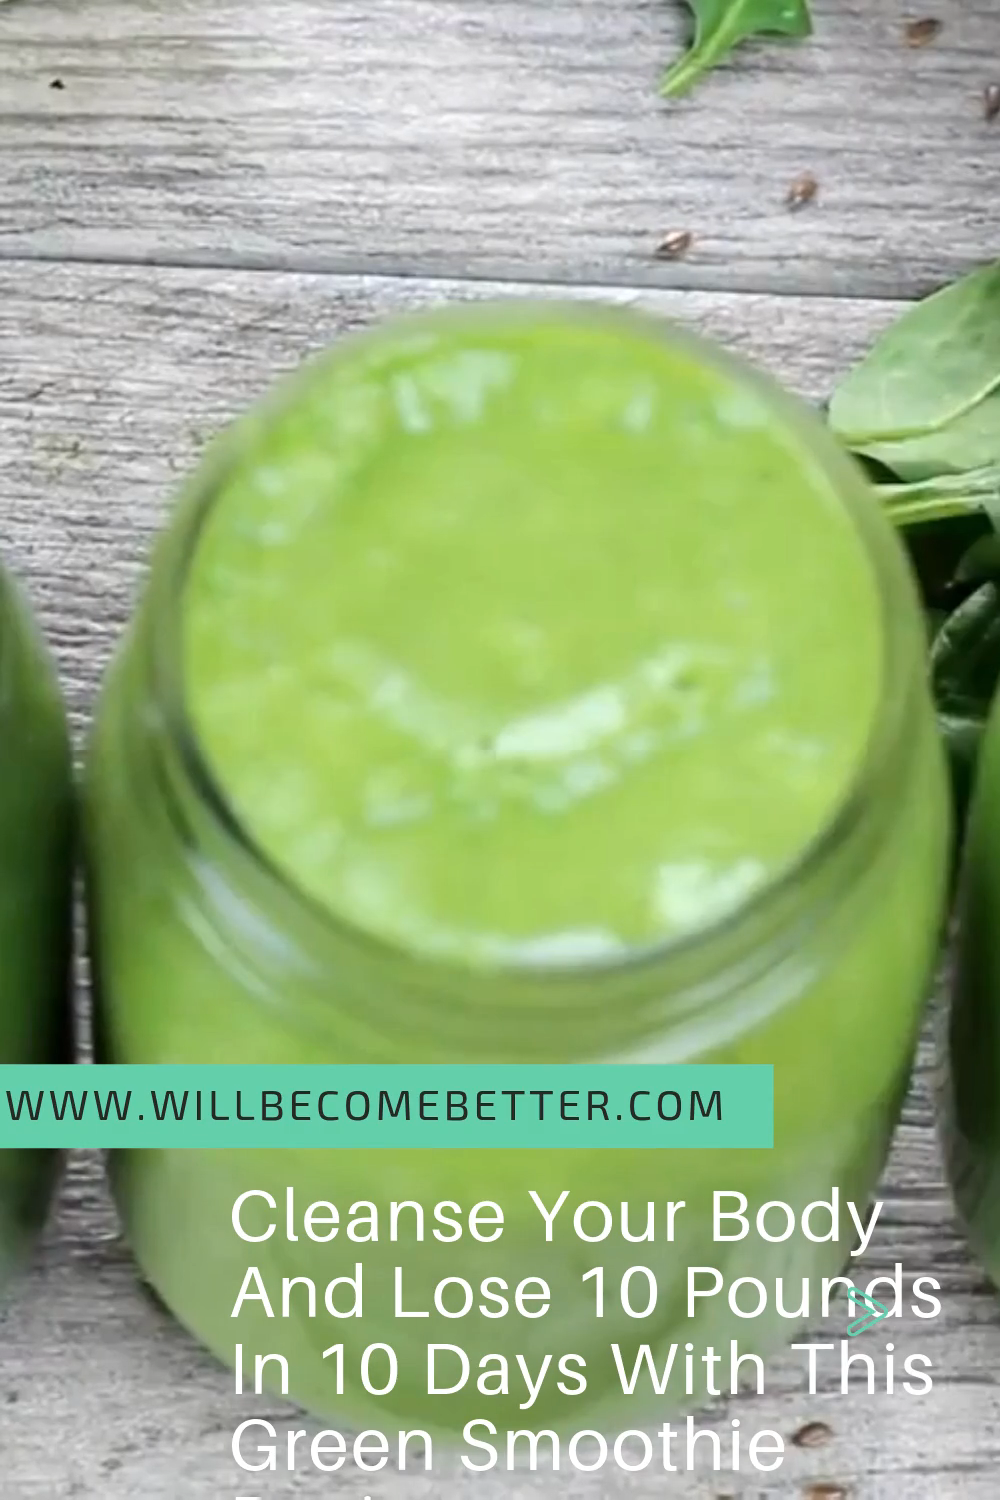 Skinny Smoothies That Will Help You Bust Belly Fat foods and spices that can help reduce a bloated belly and even burn belly fat.Belly Fat Busting Smoothie Recipe to Lose Belly Fat. Healthy smoothie This Mean Green Smoothie recipes is nutrient-packed and incredibly delicious.#smoothie #greensmoothie